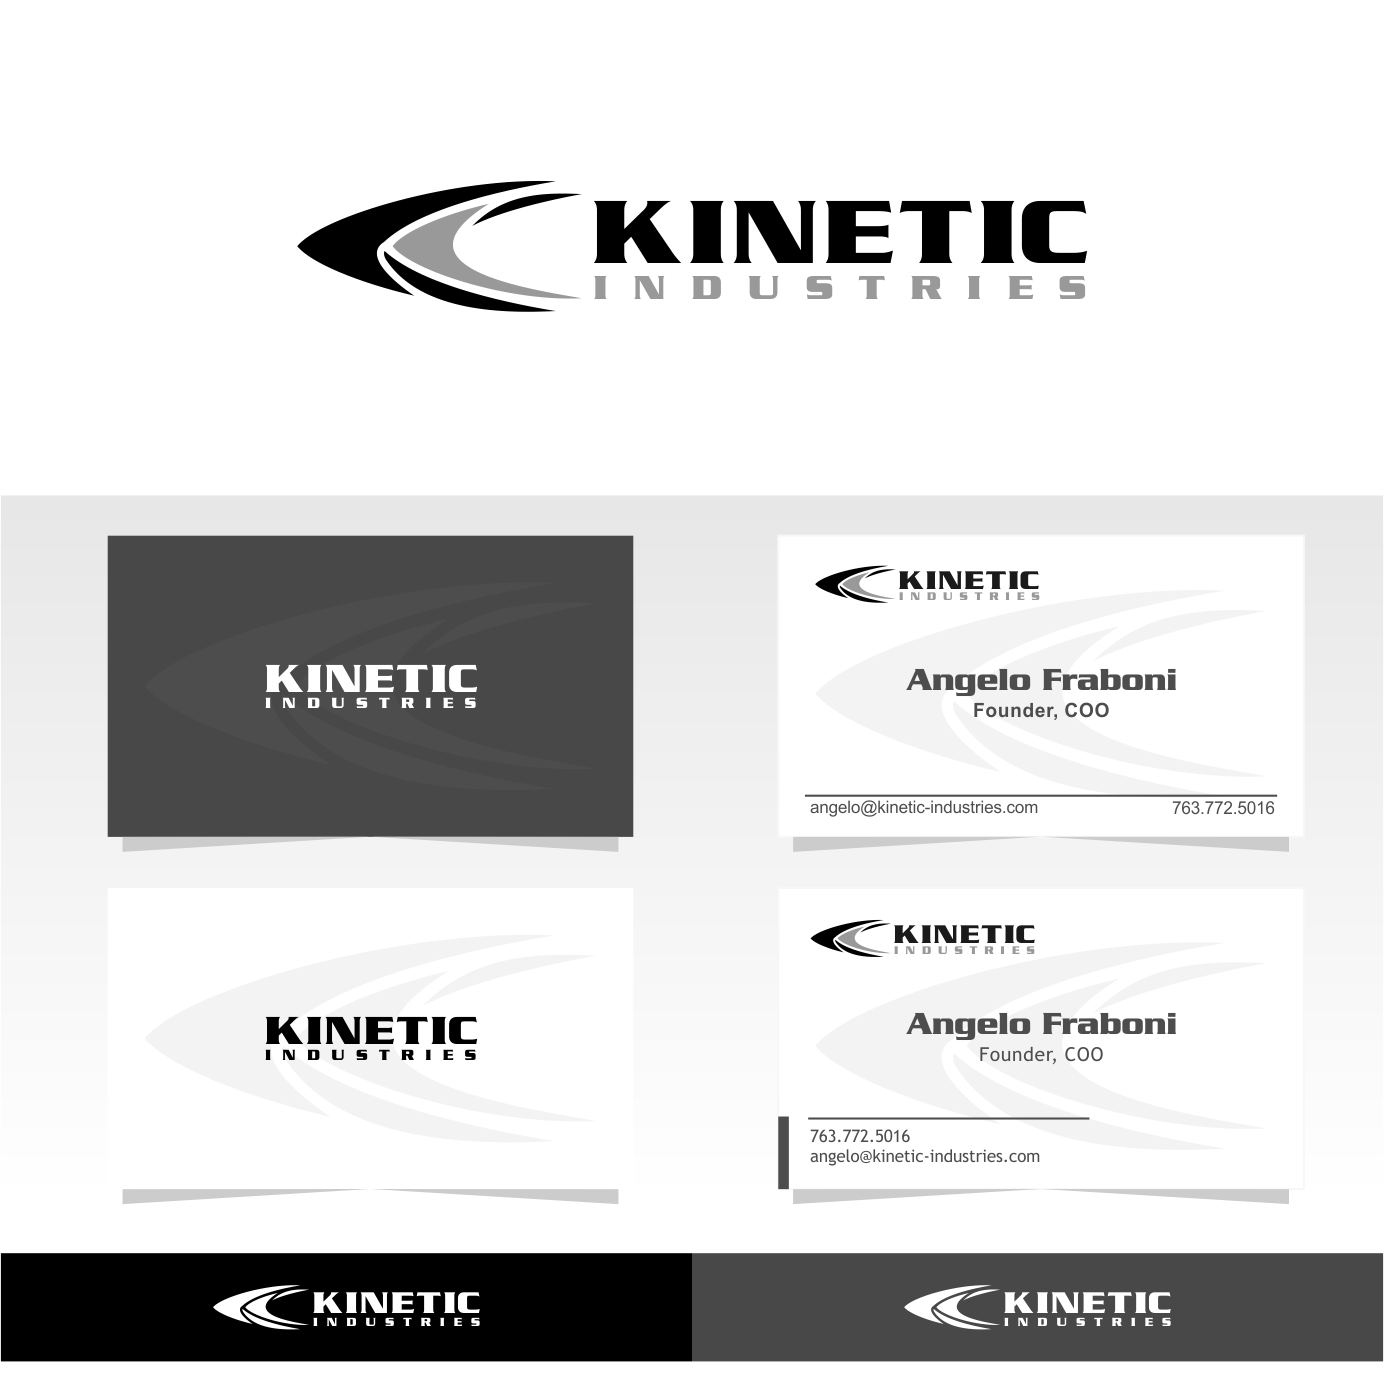 Design the logo and business card for an Ammunition Company